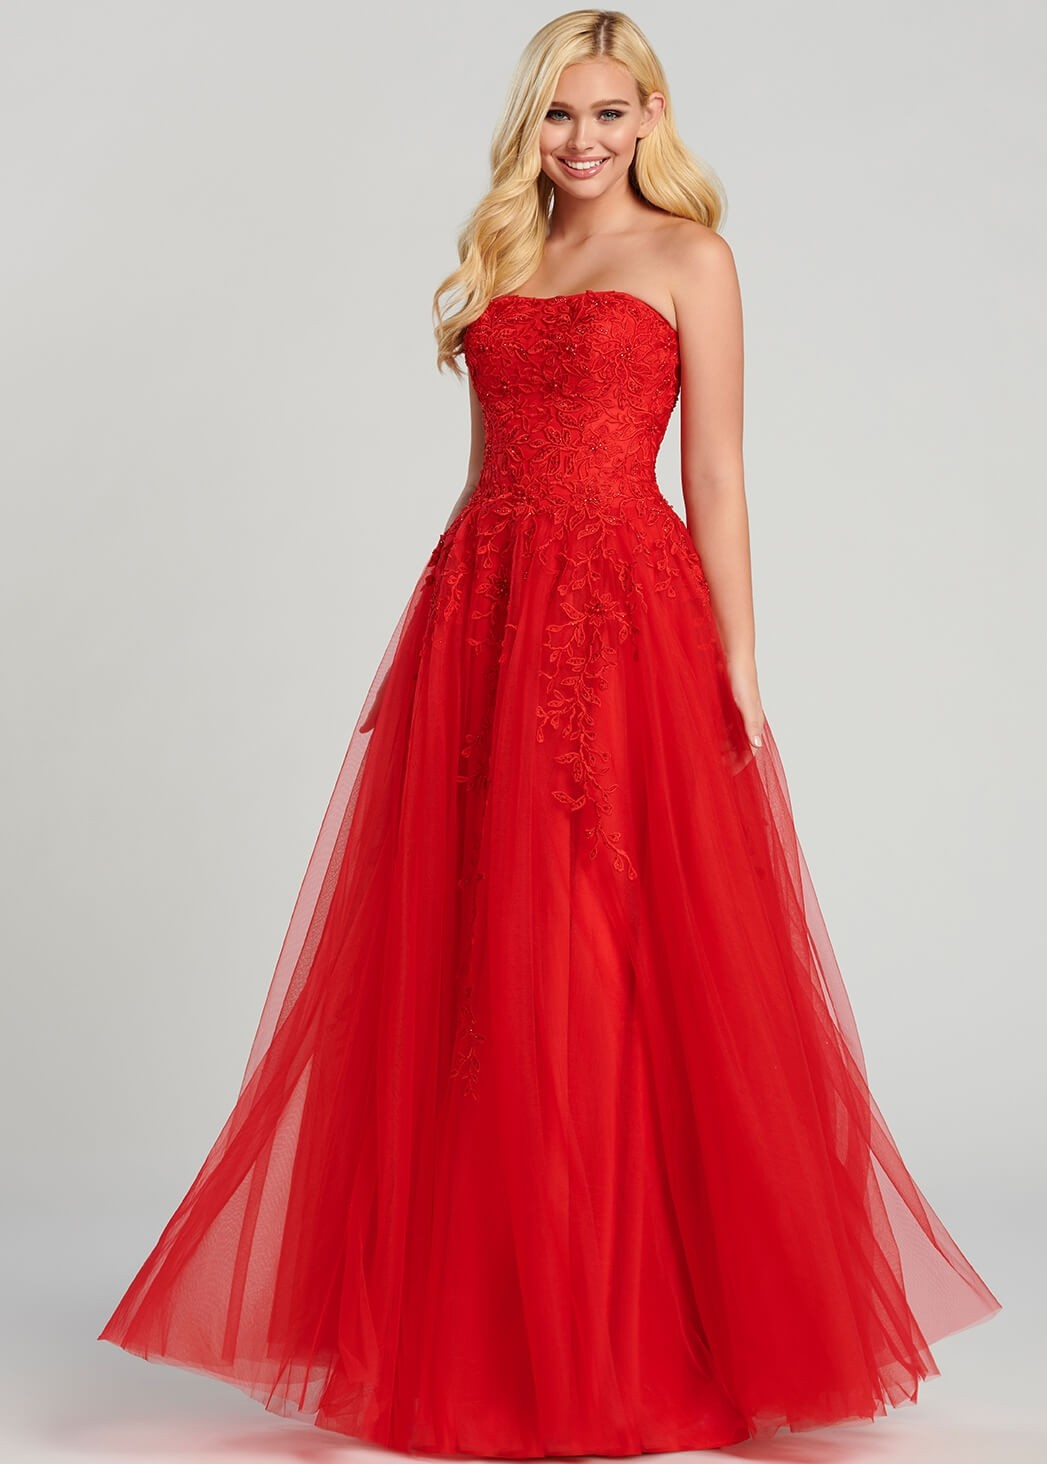 Ellie Wilde EW120116 Strapless Embroidered Tulle Ball Gown